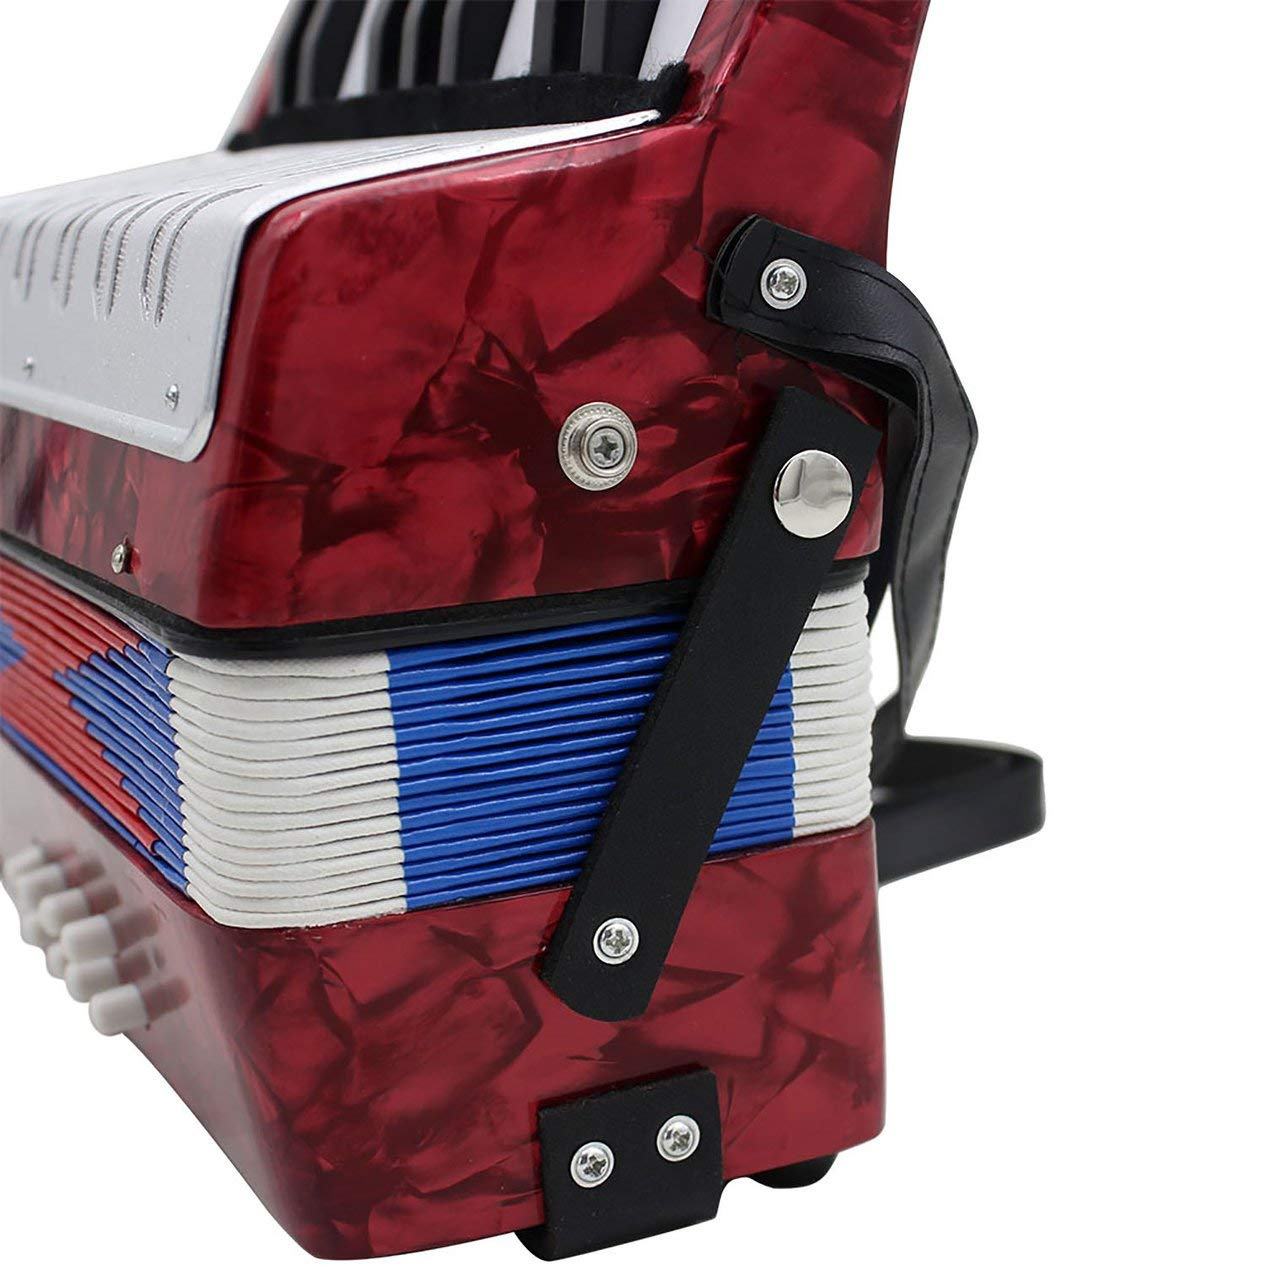 17-Key 8 Bass Accordion Musical Toy for Educational Musical Instrument Simulation Learning Concertina Rhythm by Fashinlook (Image #2)